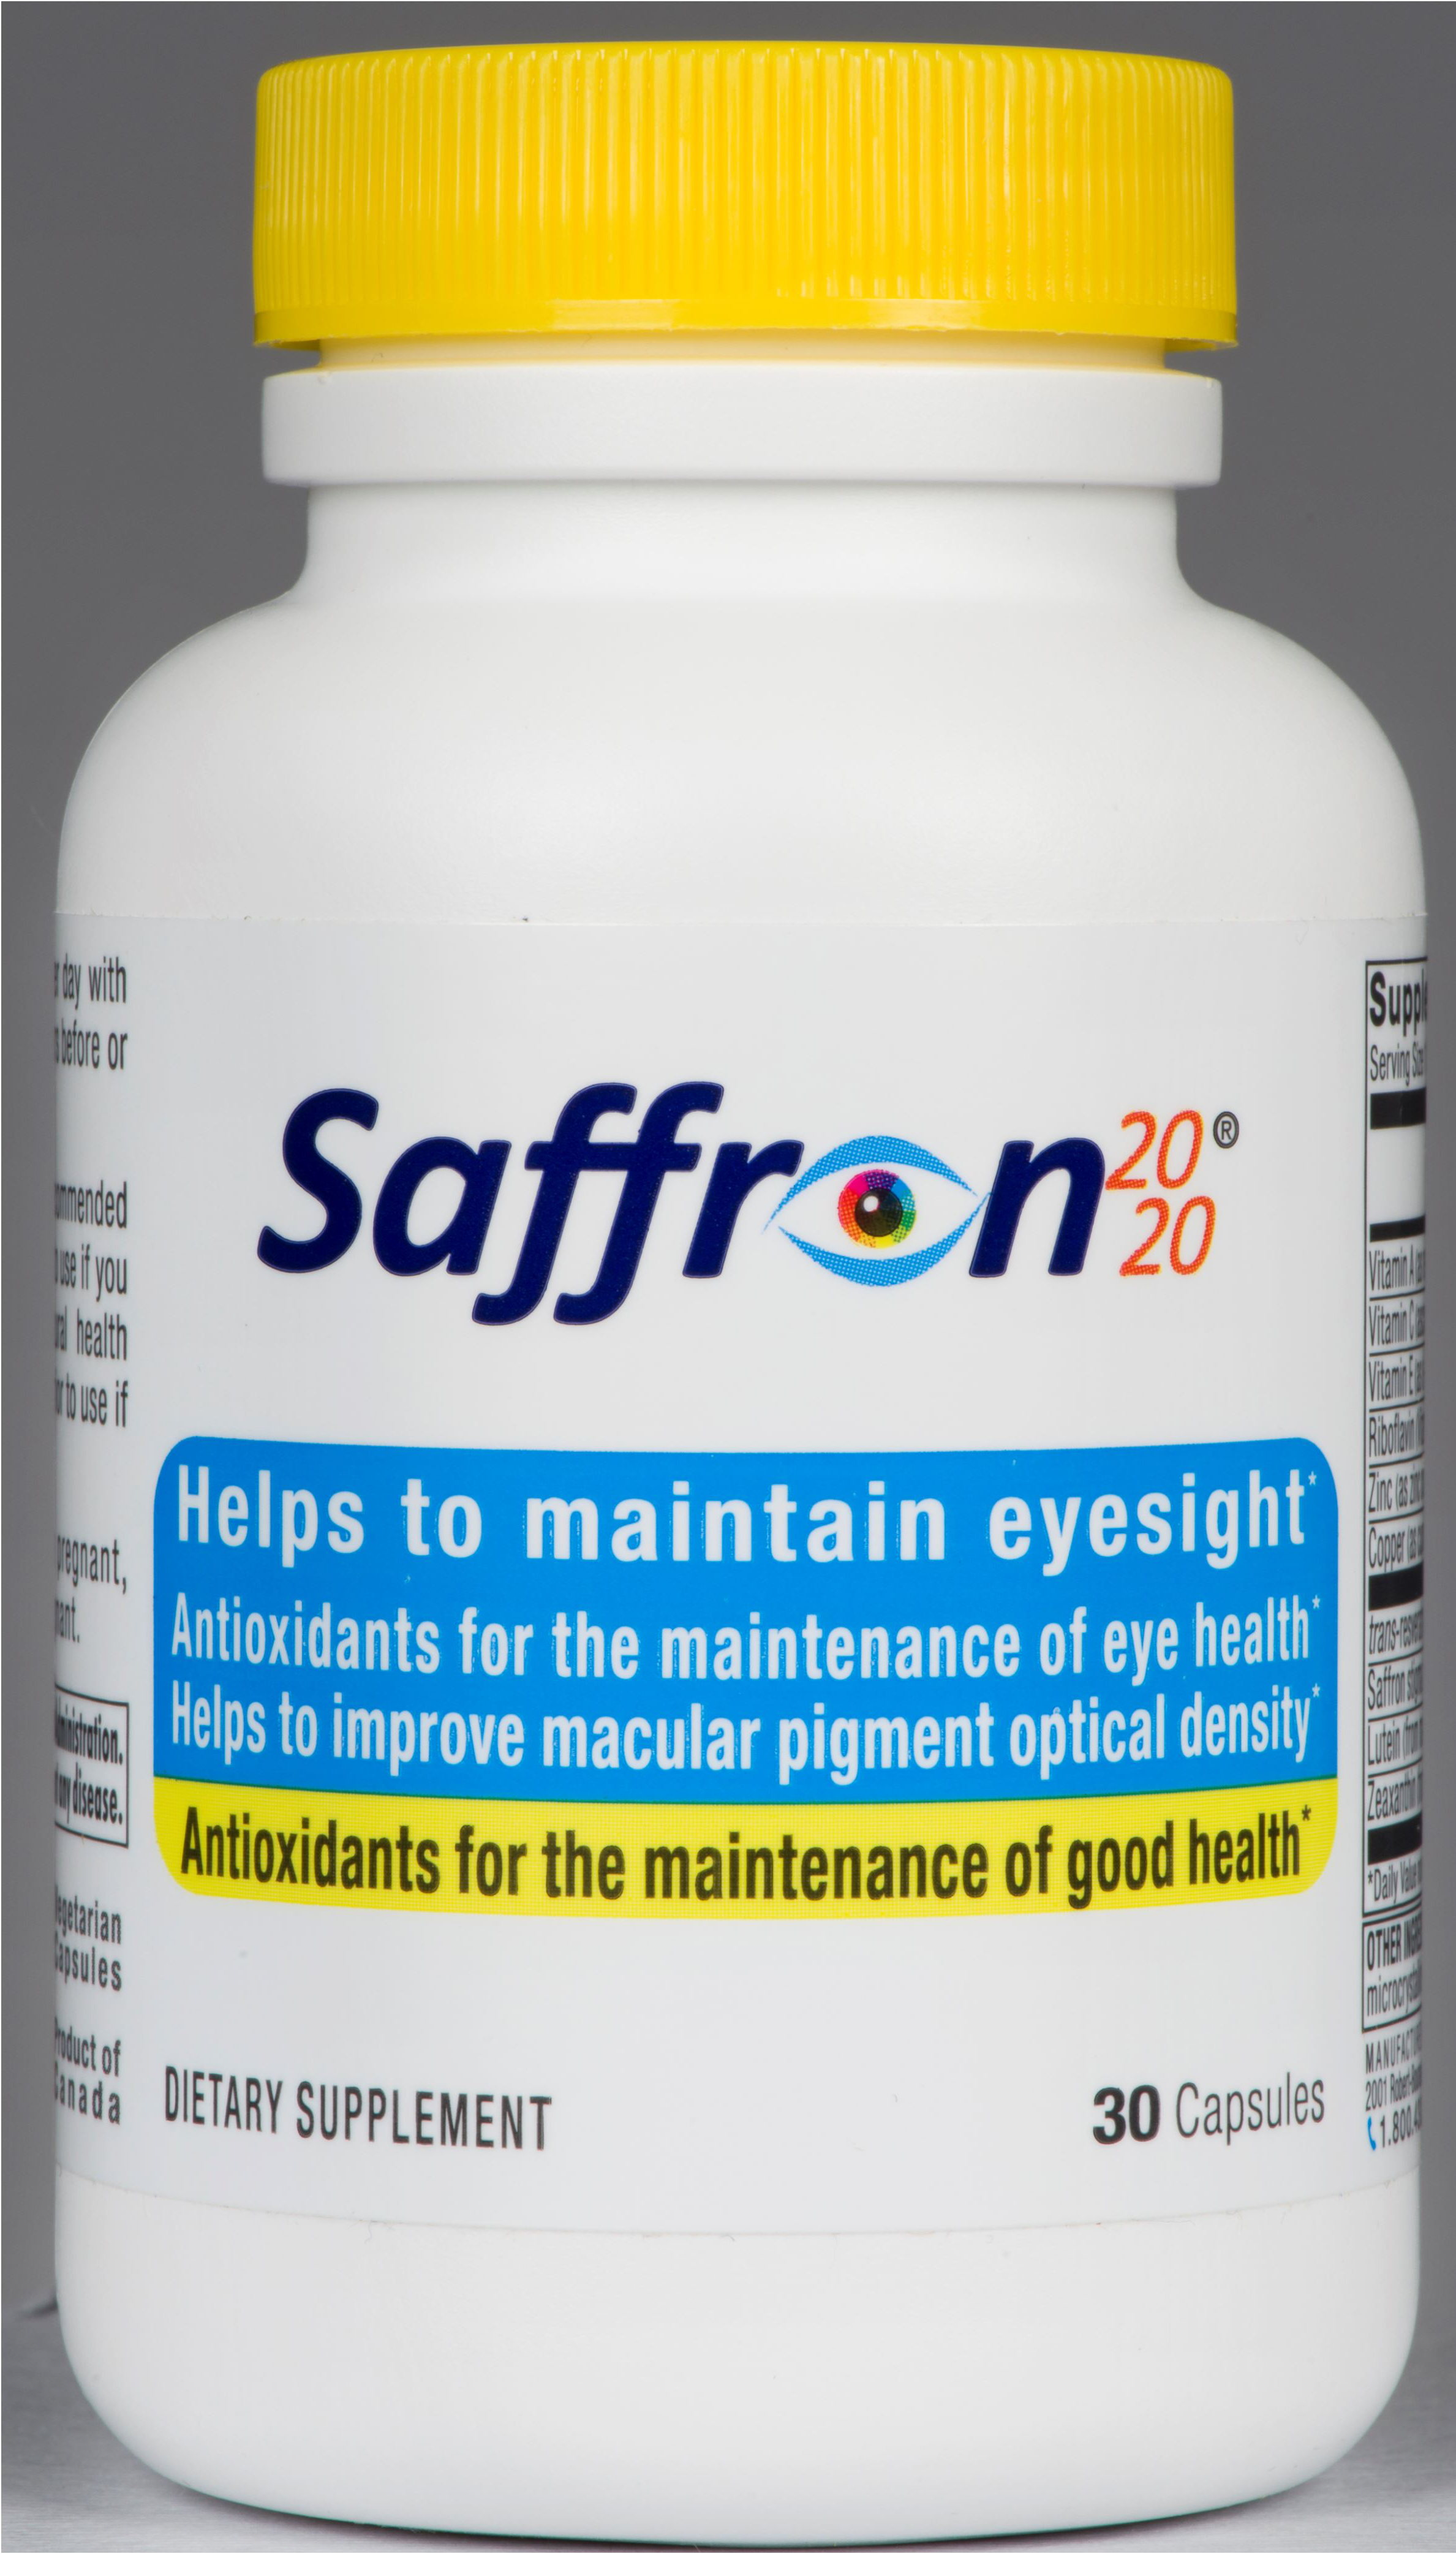 Saffron can protect sight recommend